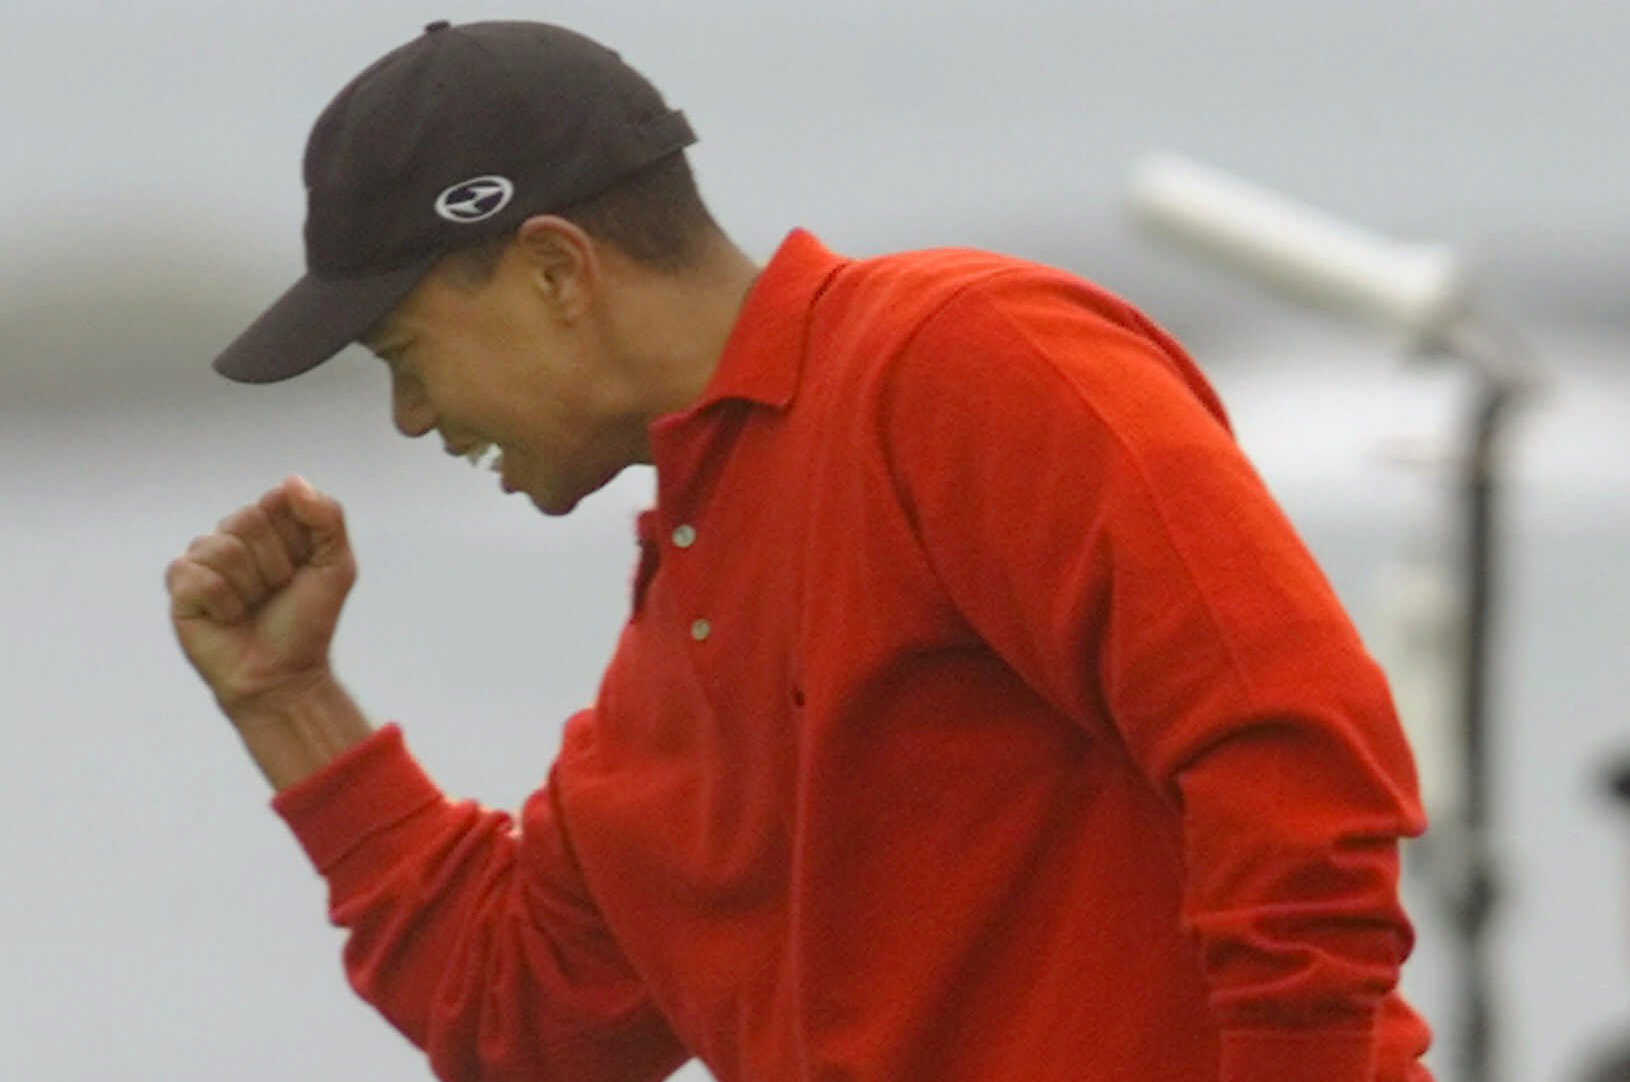 Tiger Woods of Orlando, Fla., reacts on the 18th green of the Pebble Beach Golf Links after making a birdie putt to take the lead and win the AT&T Pebble Beach National Pro-Am in Pebble Beach, Calif., Monday Feb. 7, 2000. The win was Woods' sixth consecutive PGA Tour victory.(AP Photo/Eric Risberg)